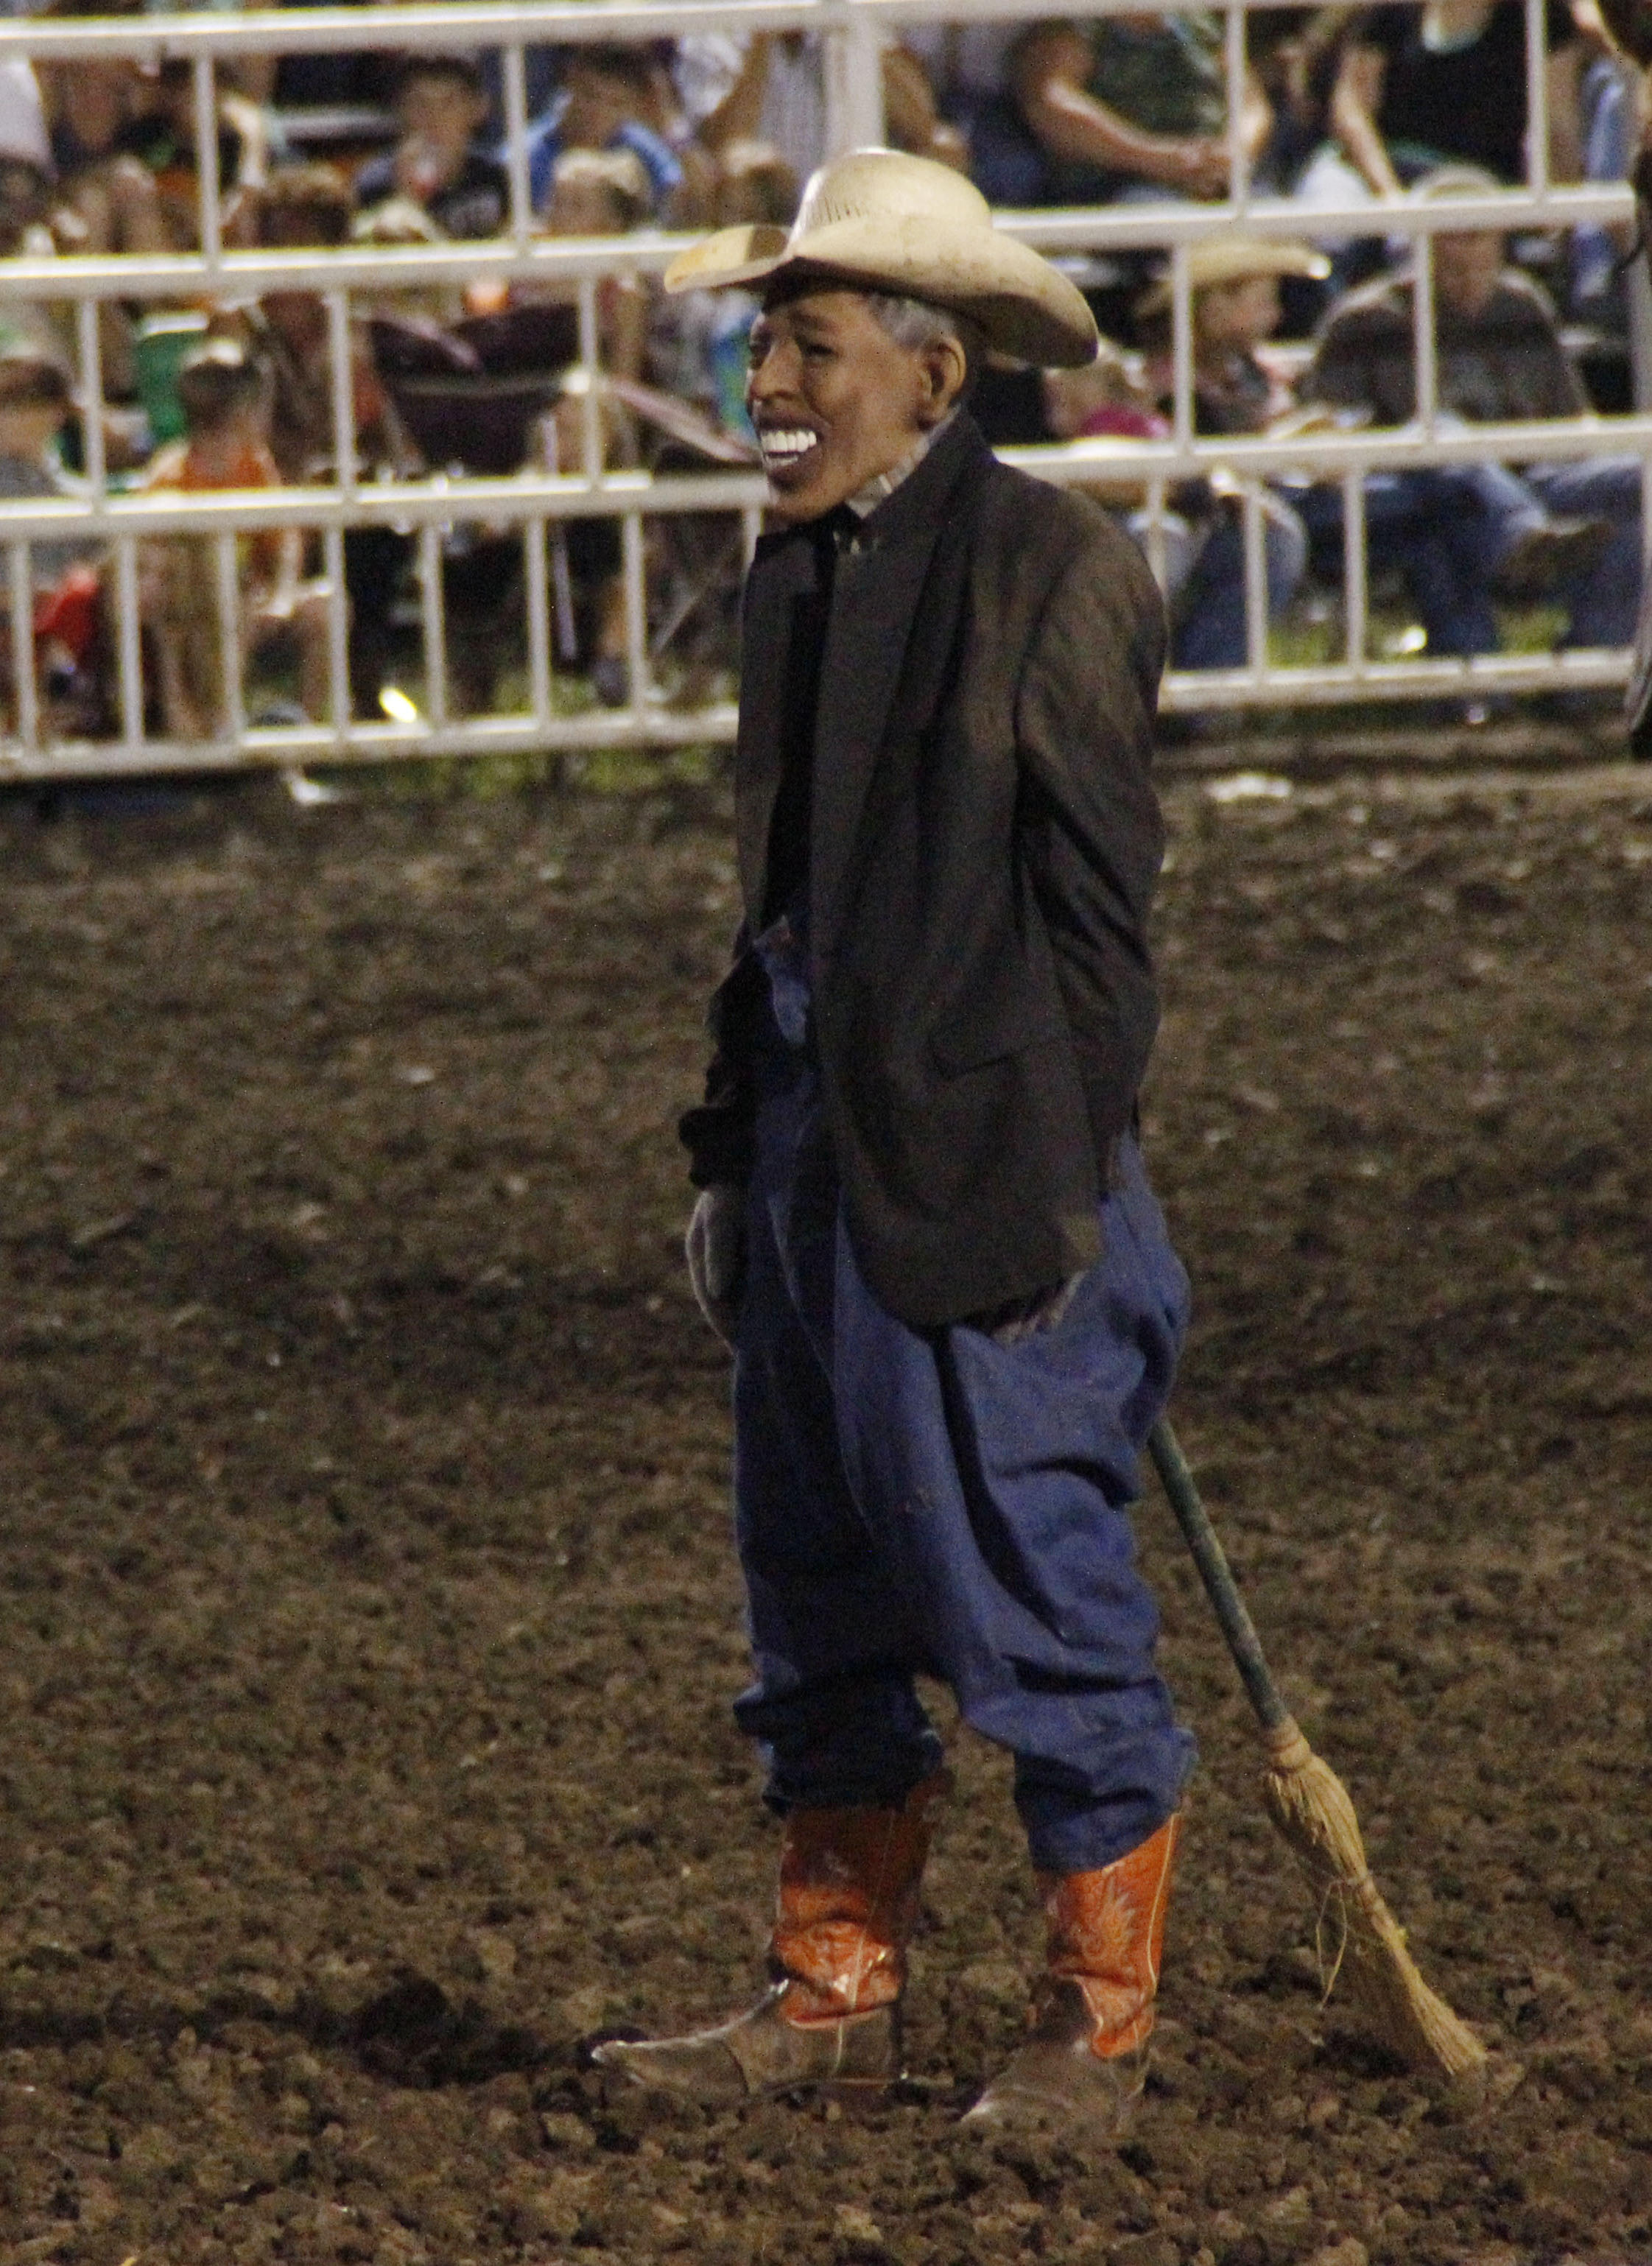 Rodeo Clown Behind Obama Skit Is Banned From State Fair